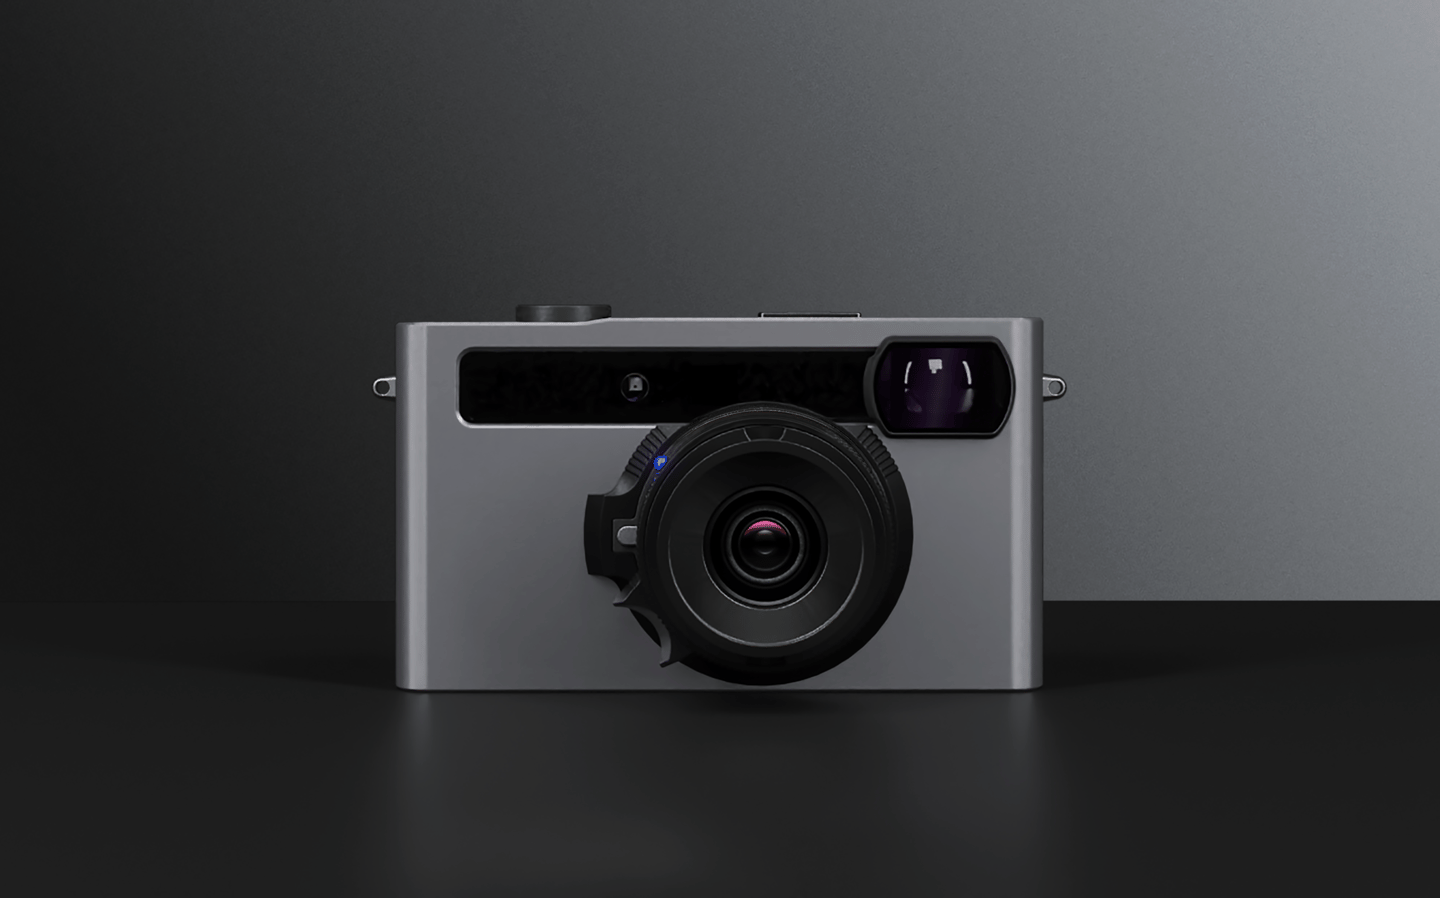 The Pixii digital rangefinder offers a hands-on photography experience while also leveraging a smartphone for editing and sharing